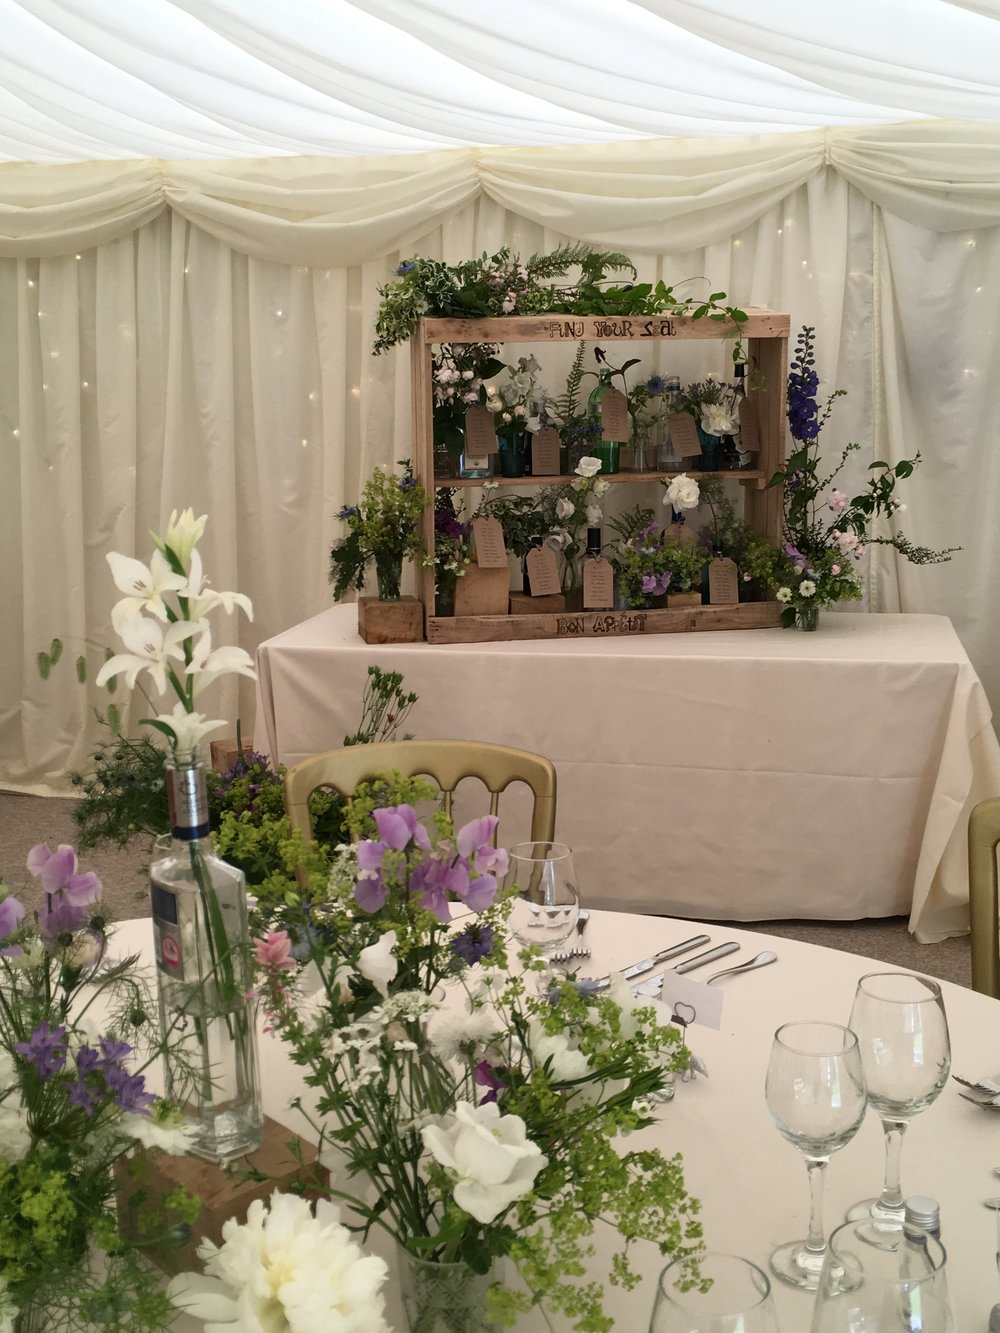 IMG_5358.jpg gin theme table centres and table planner.jpg